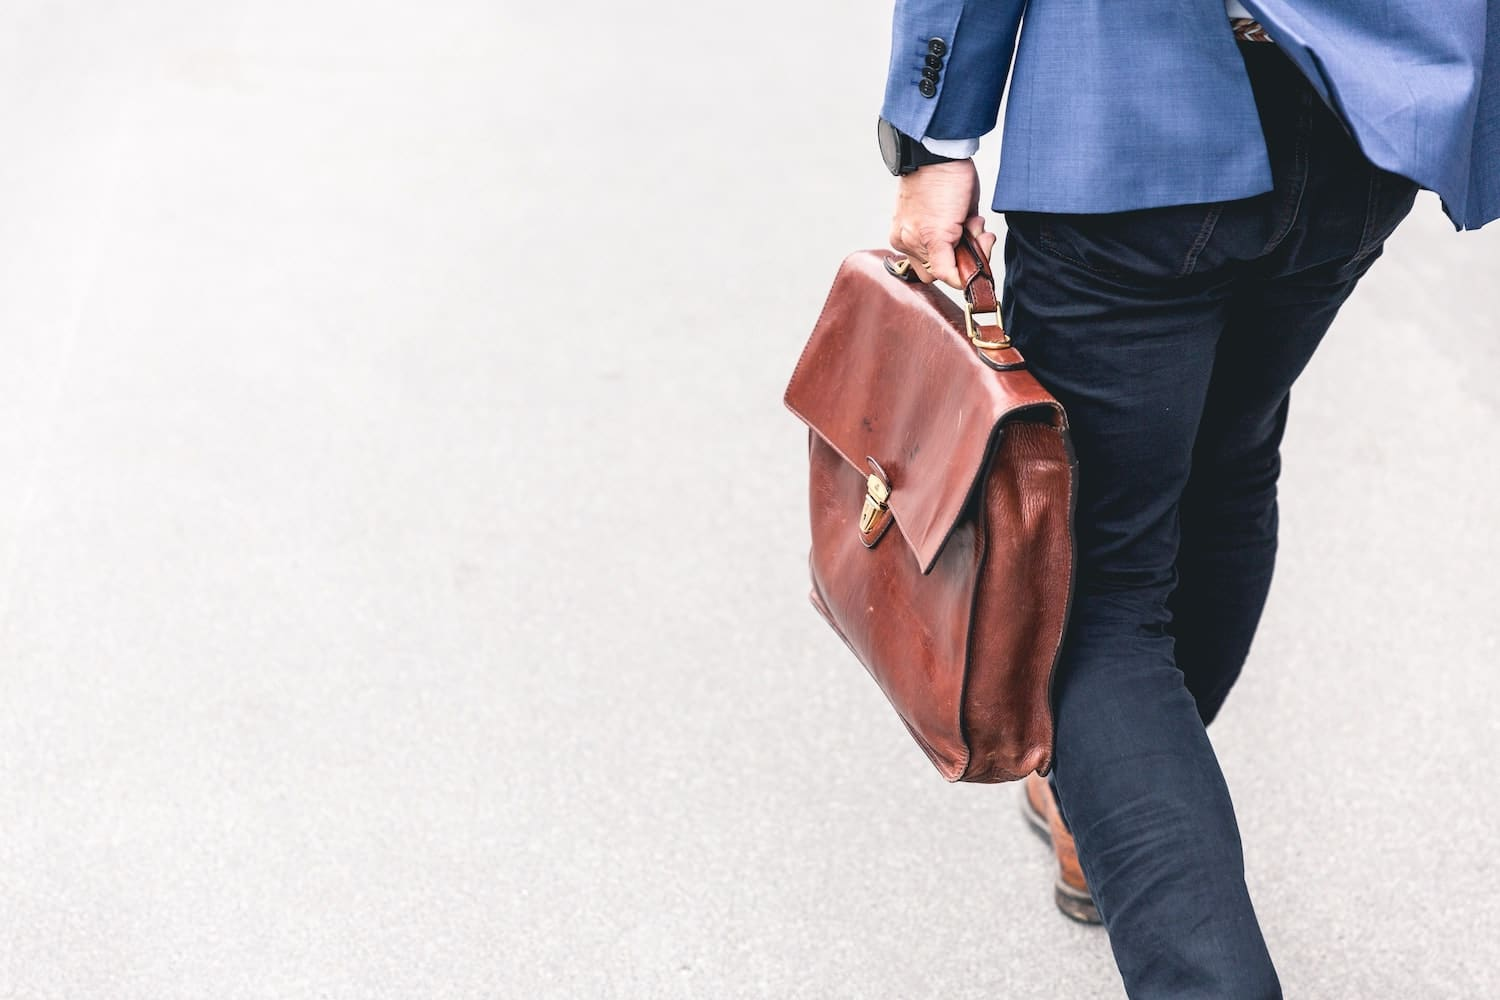 financial controller with a suitcase